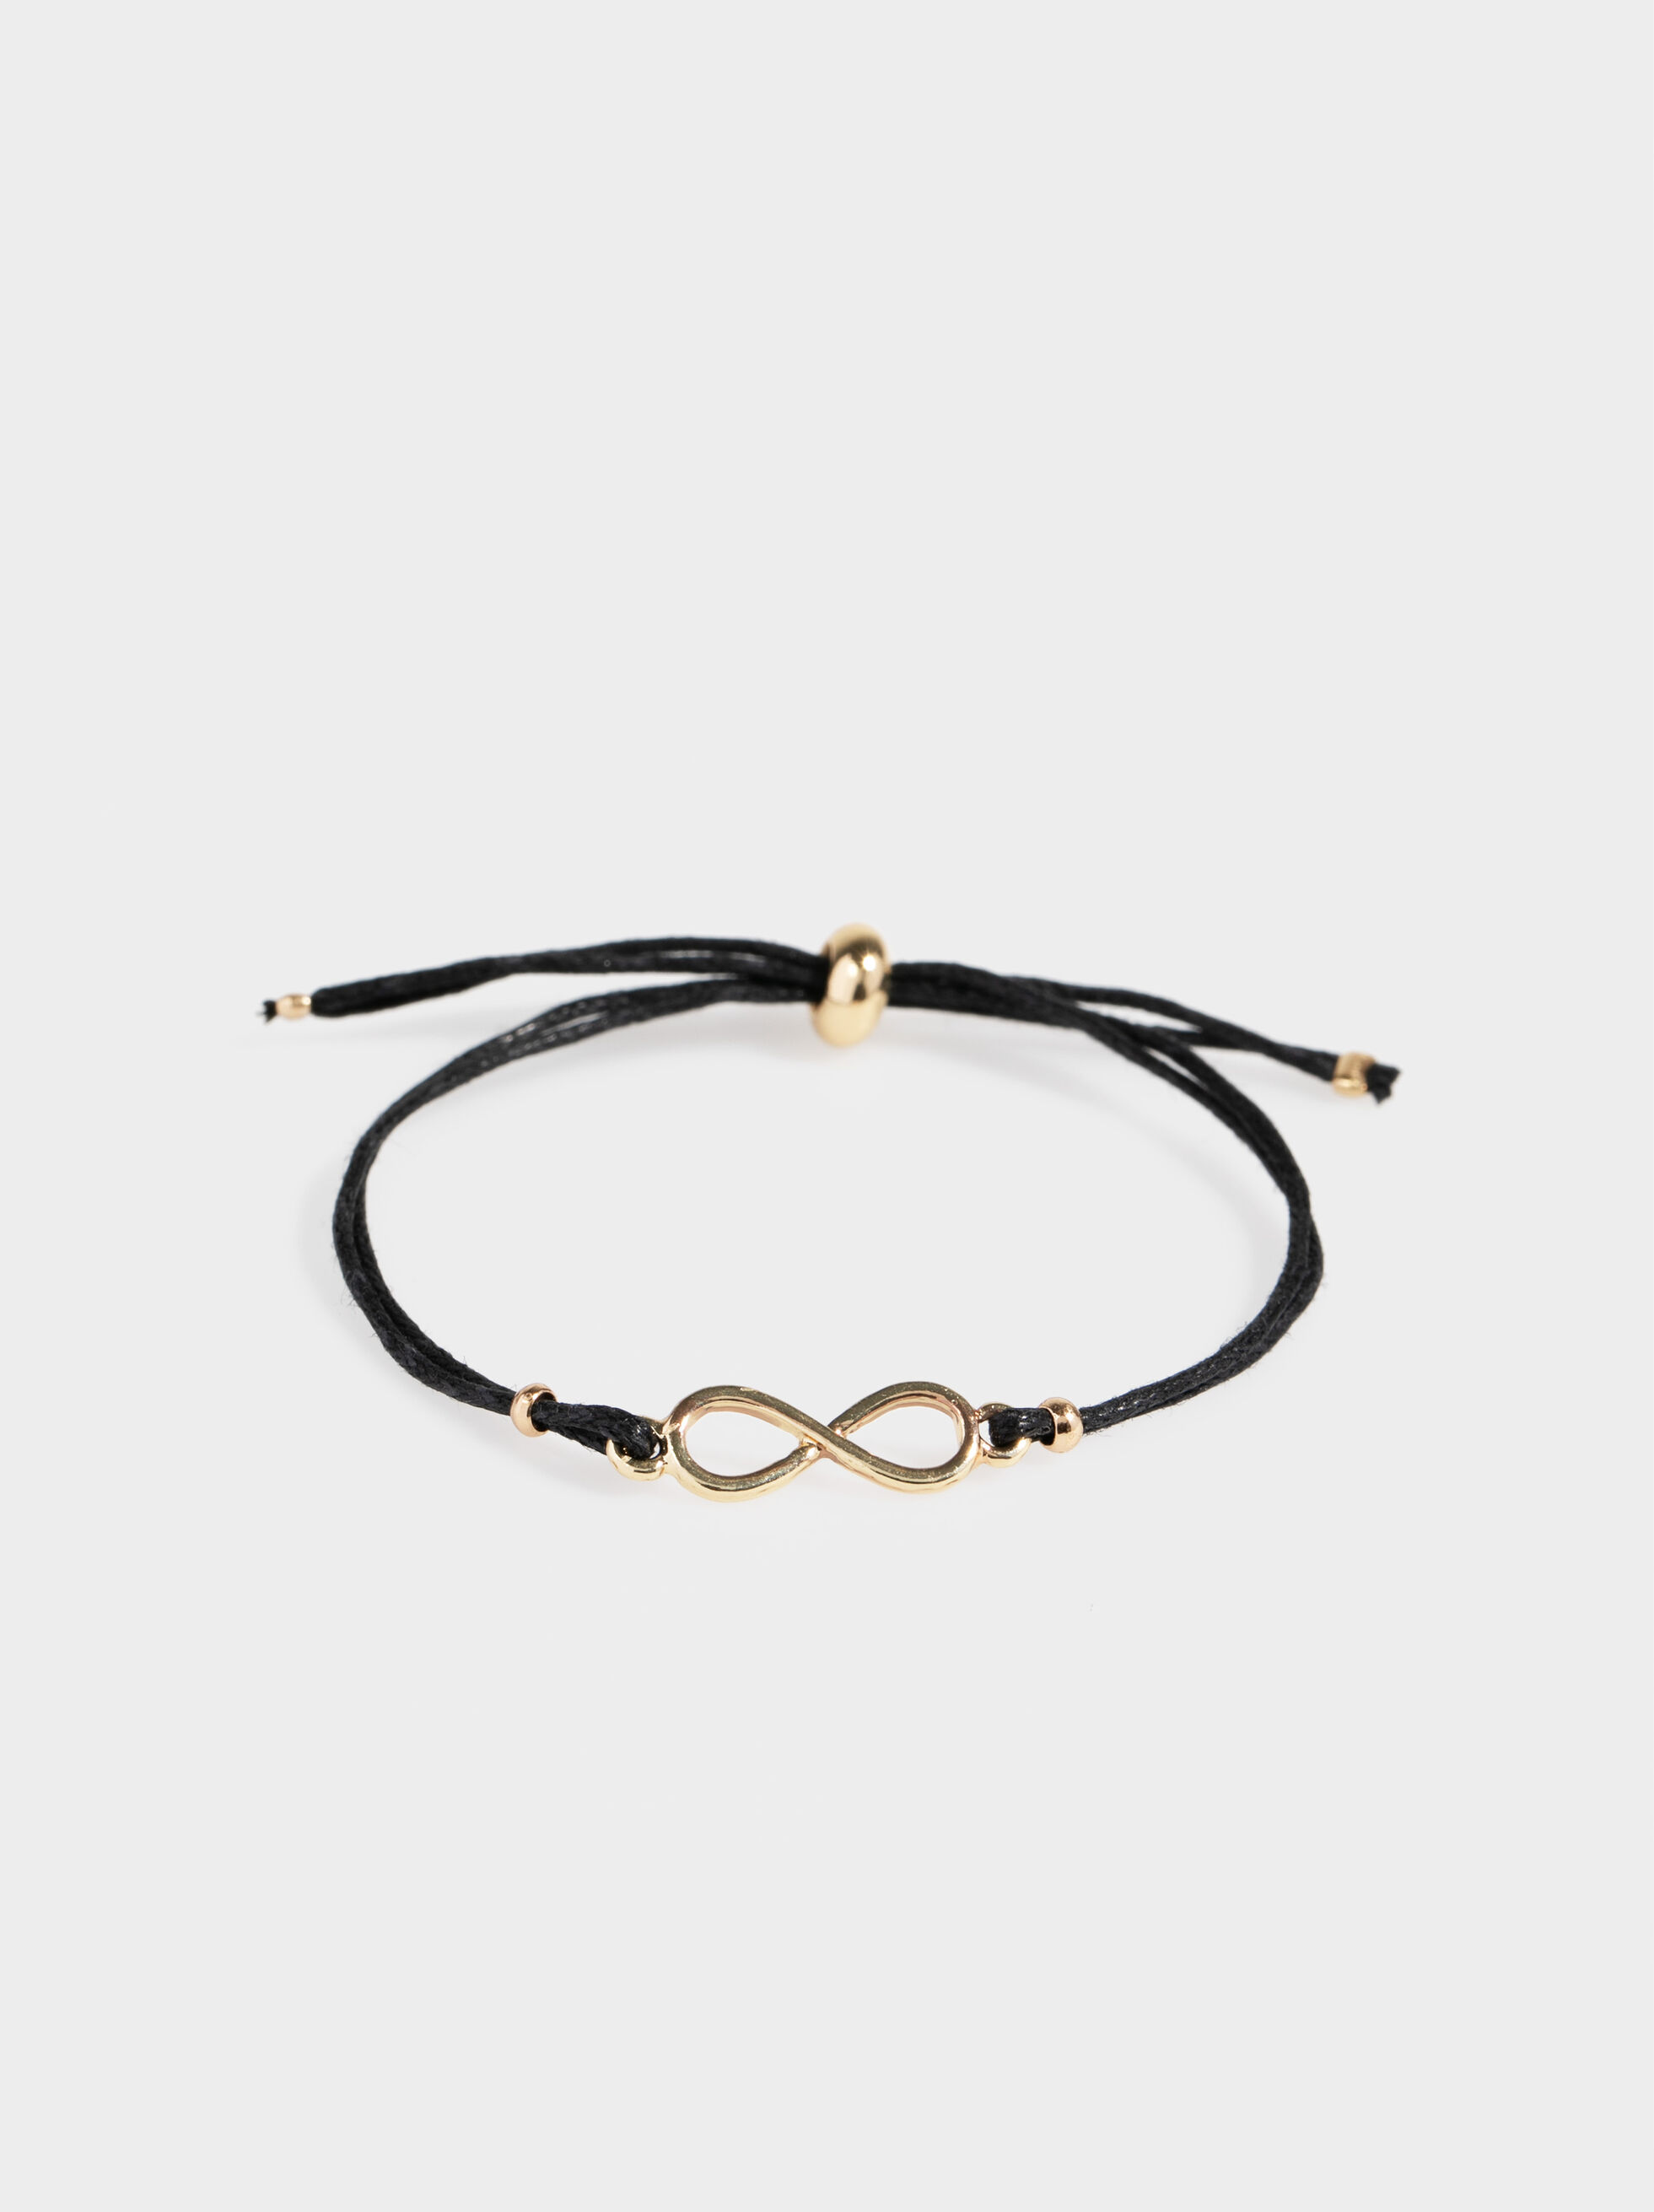 Adjustable Bracelet With Infinity Sign, Black, hi-res